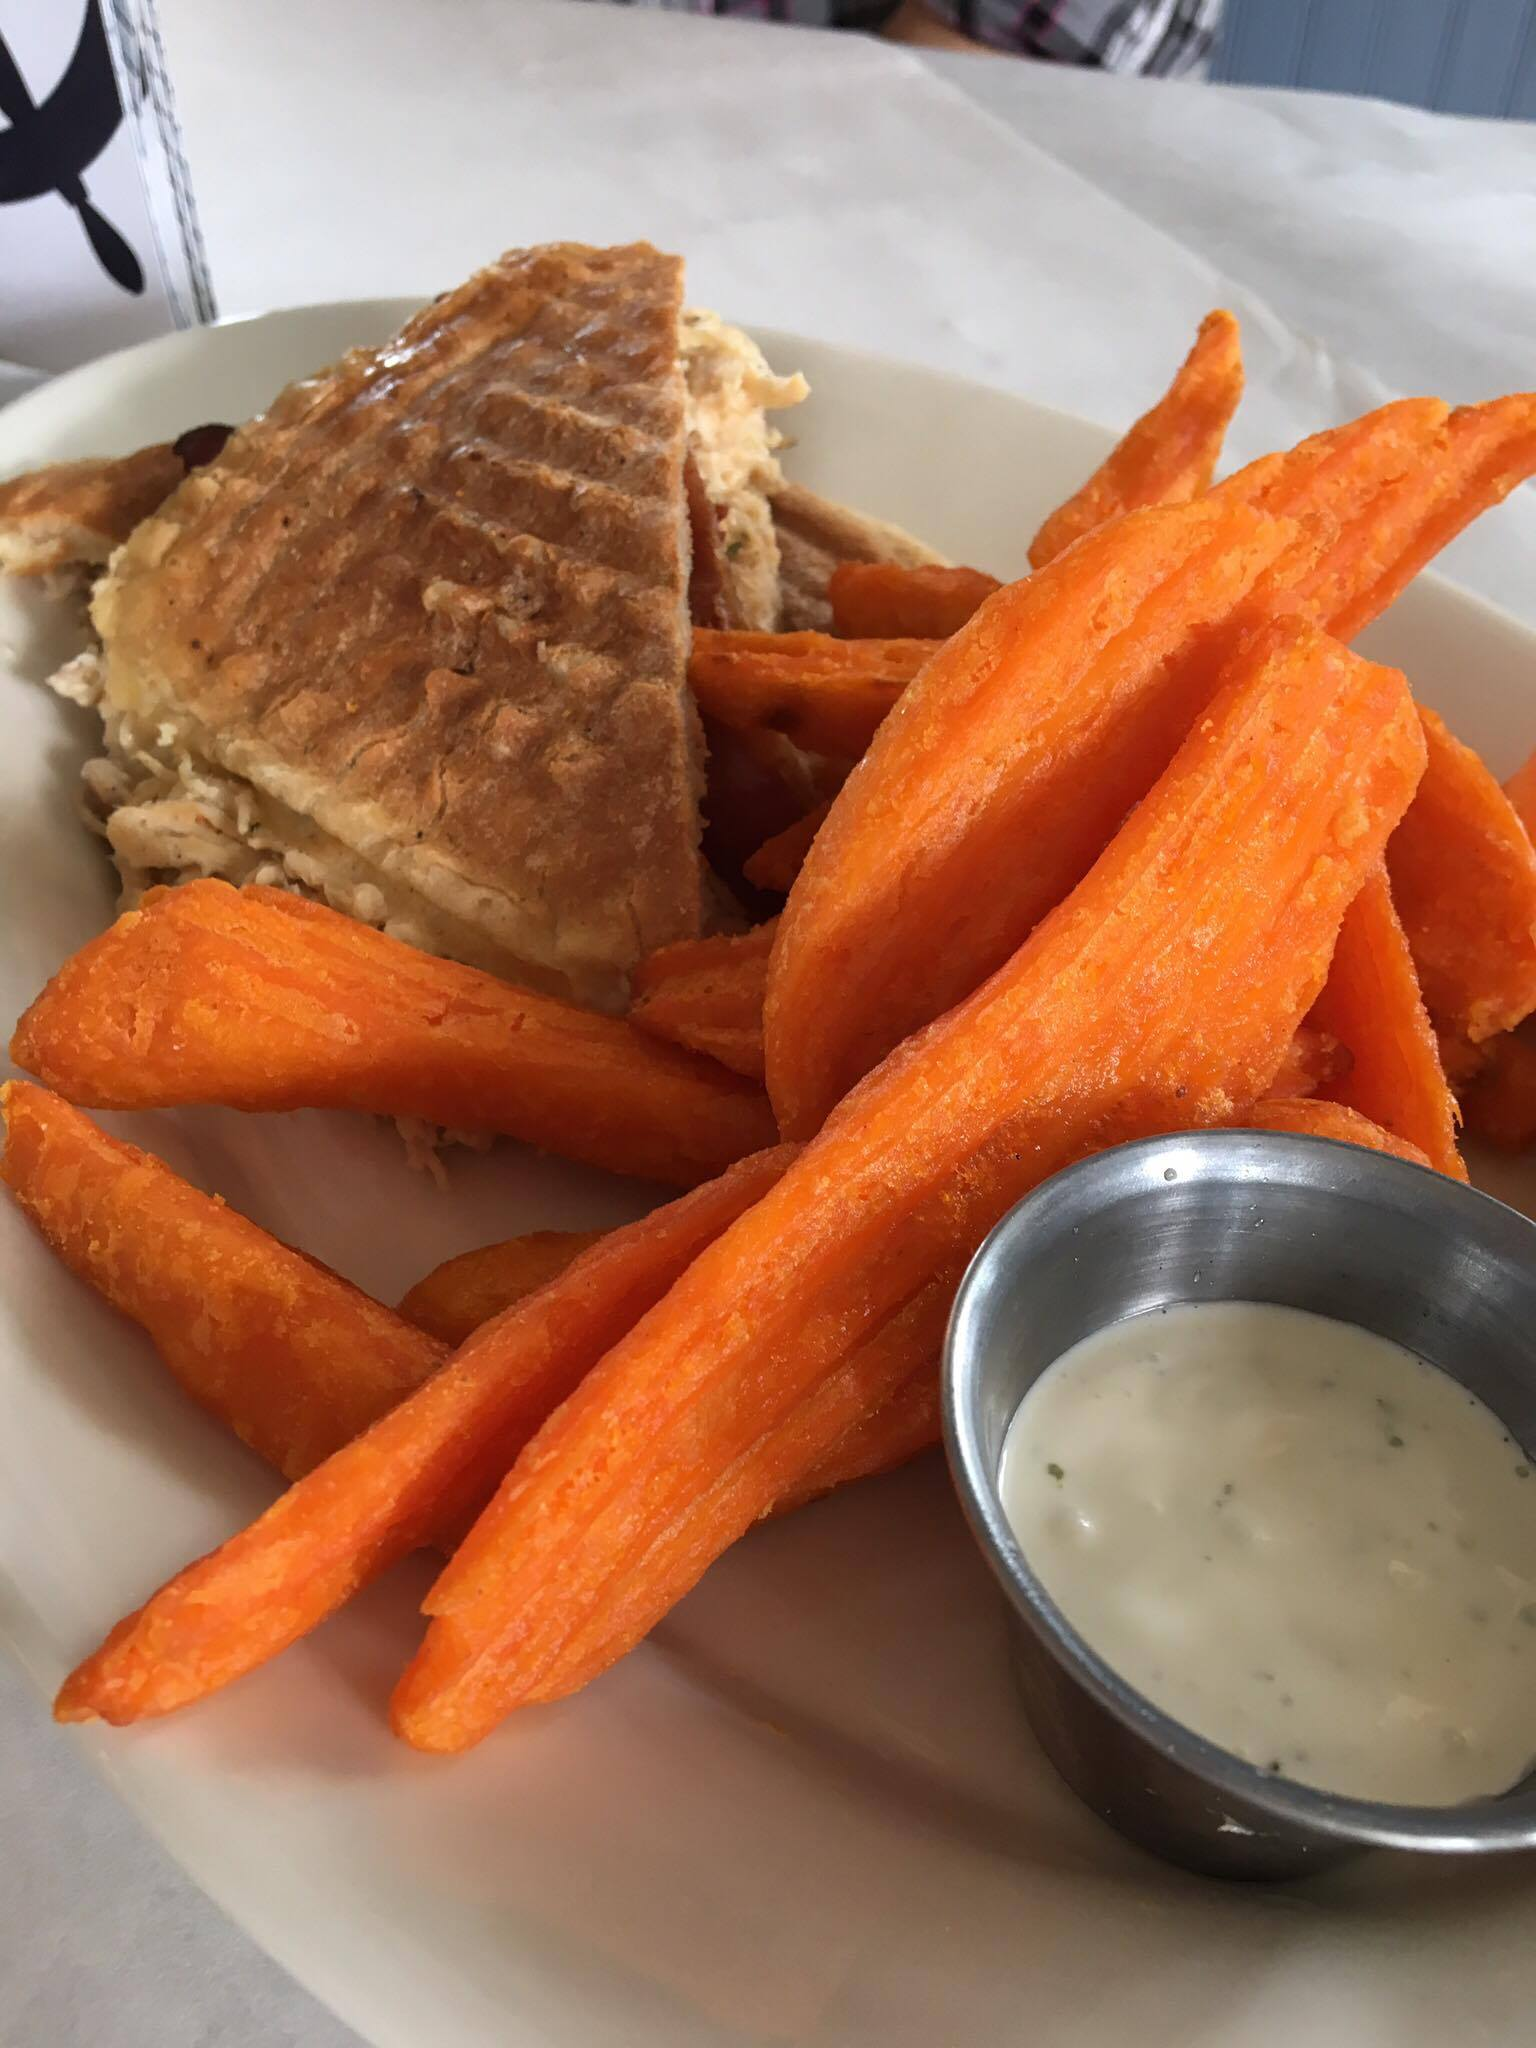 cordon bleu panini with sweet potato fries